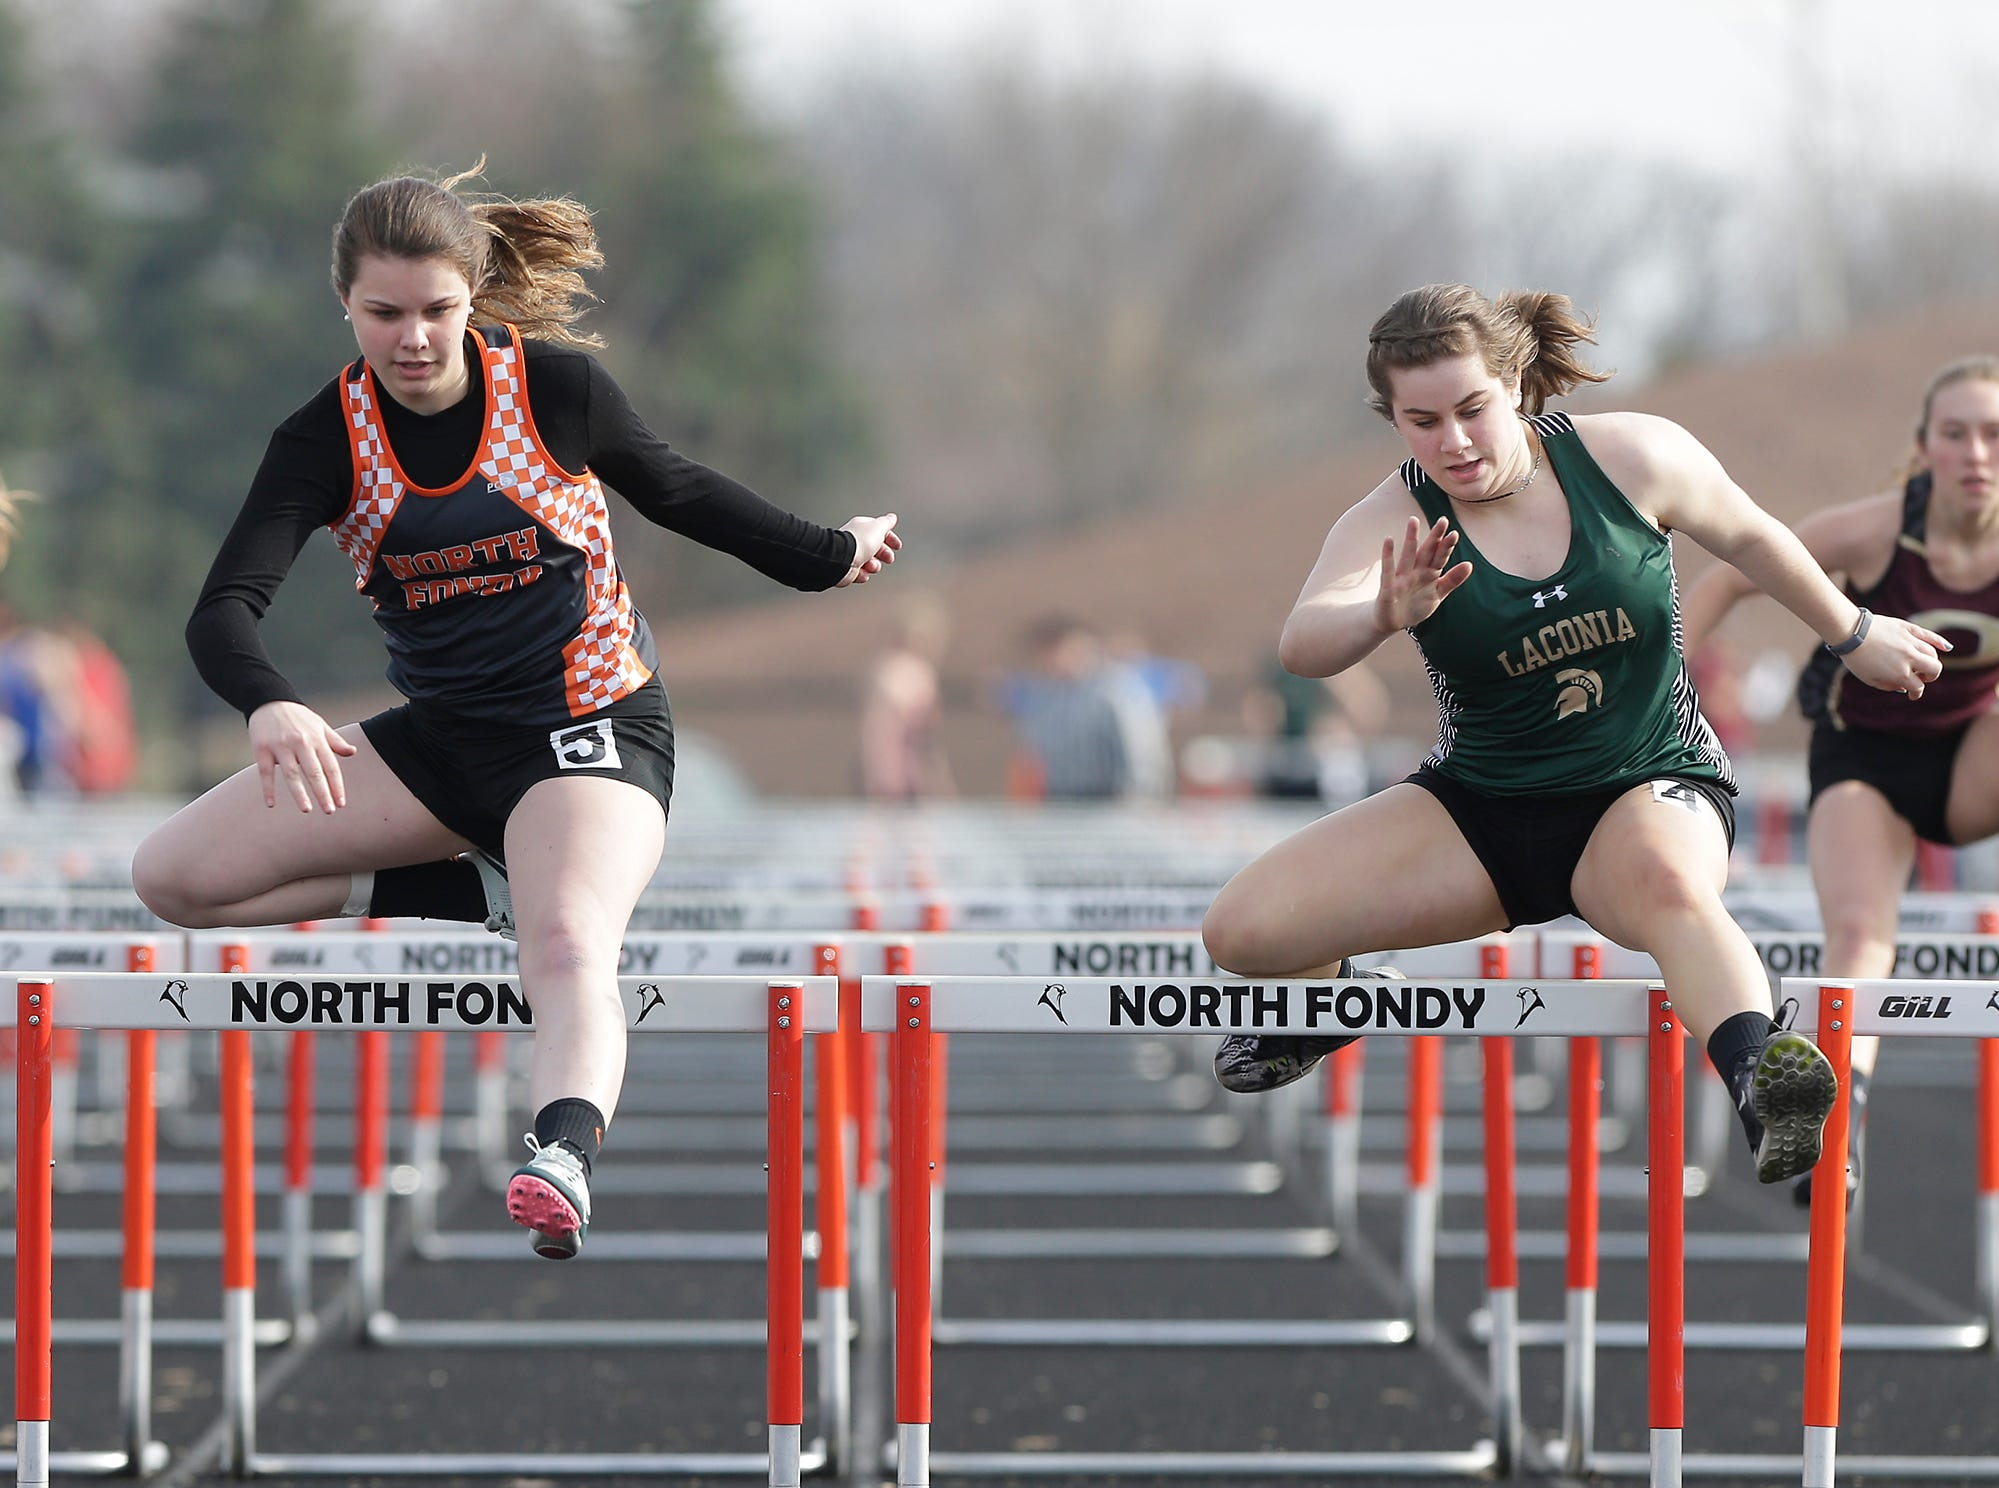 North Fond du Lac High School's Josey Wallender and Laconia's Cassie Coffeen take part in the girls 100 meter hurdels Tuesday, April 16, 2019 at North Fond du Lac High School in North Fond du Lac, Wis. Doug Raflik/USA TODAY NETWORK-Wisconsin